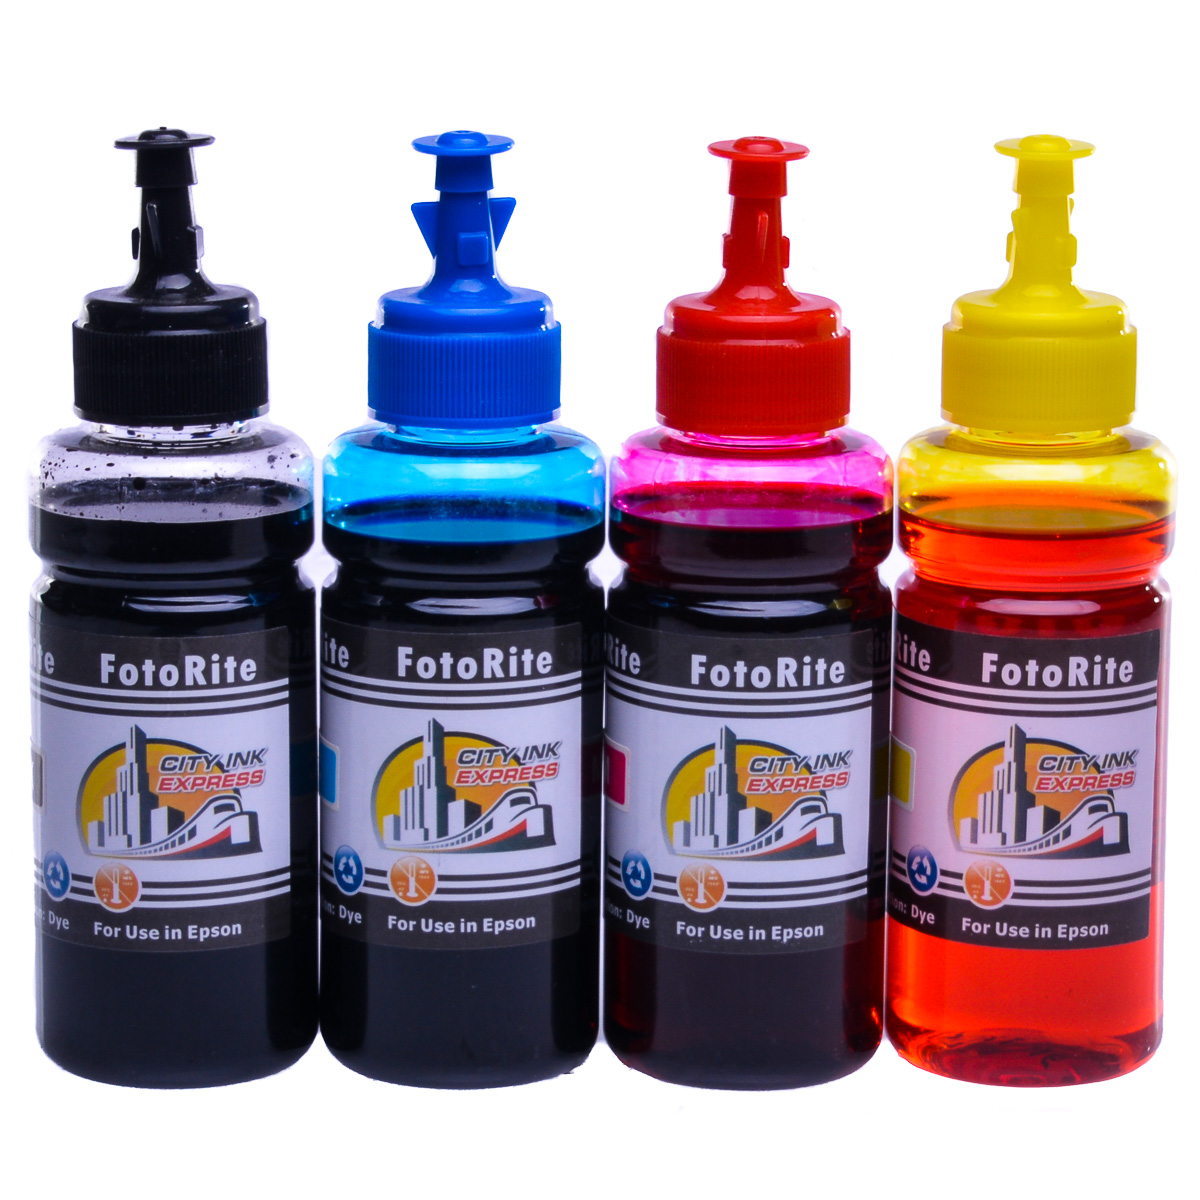 Cheap Multipack dye ink refill replaces Epson Stylus SX115